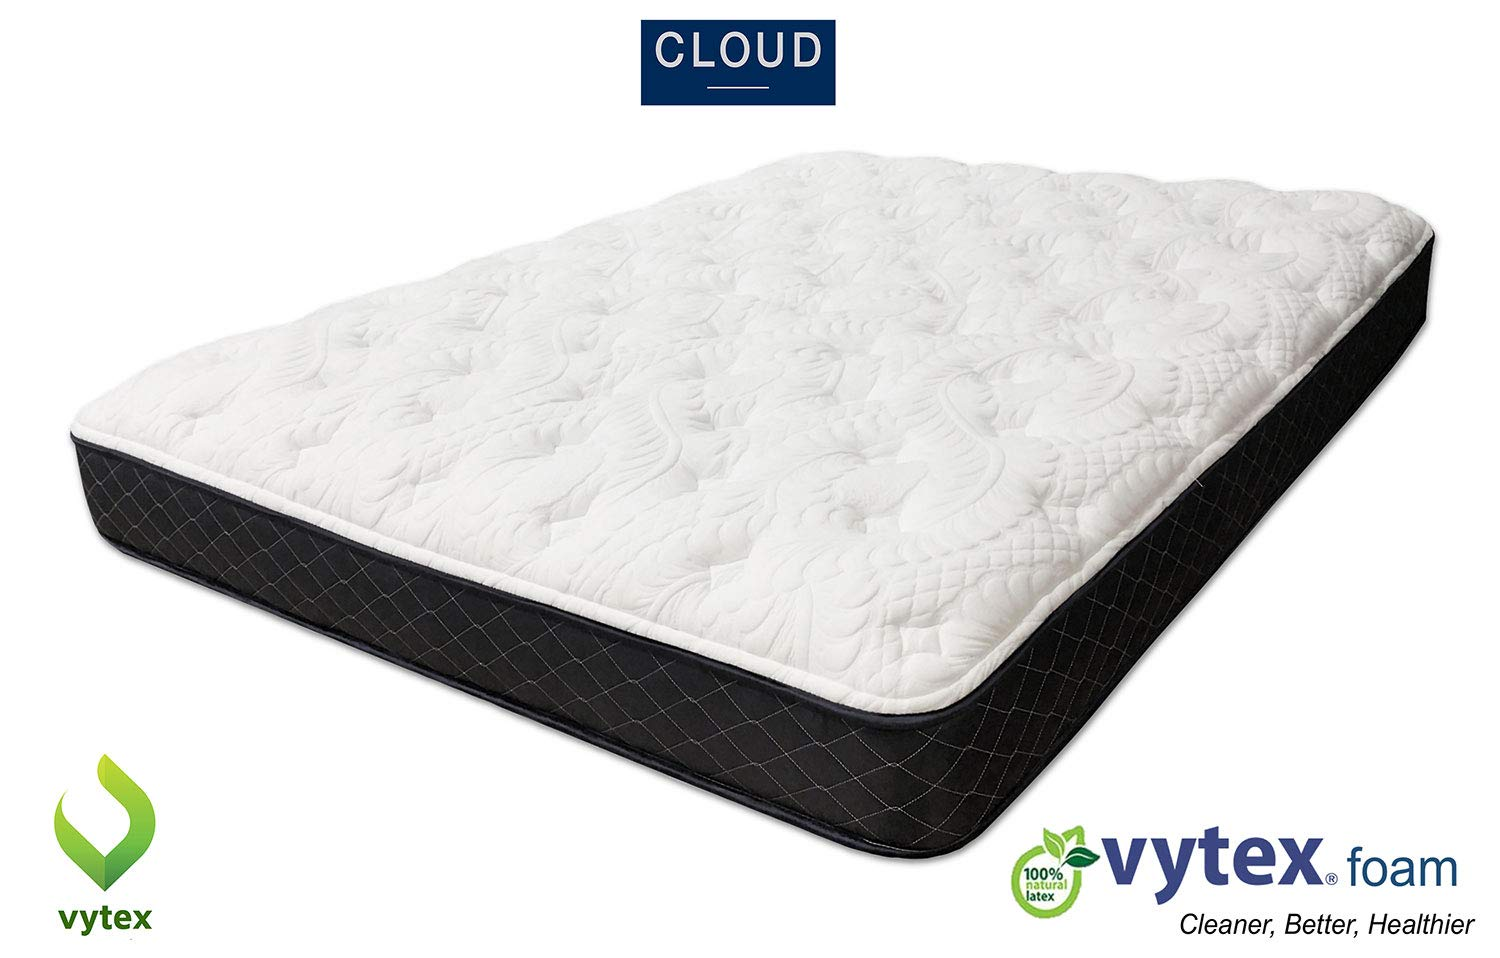 Vytex King 10 1/2 Inch Latex Cloud Mattress, Cushion Firm, Purchase Includes Free $200 Vytex Topper Shipped After 7 Sleeping Nights, Choice of 4 Comfort Levels, Making a Custom Bed Worry Free Returns by Vytex